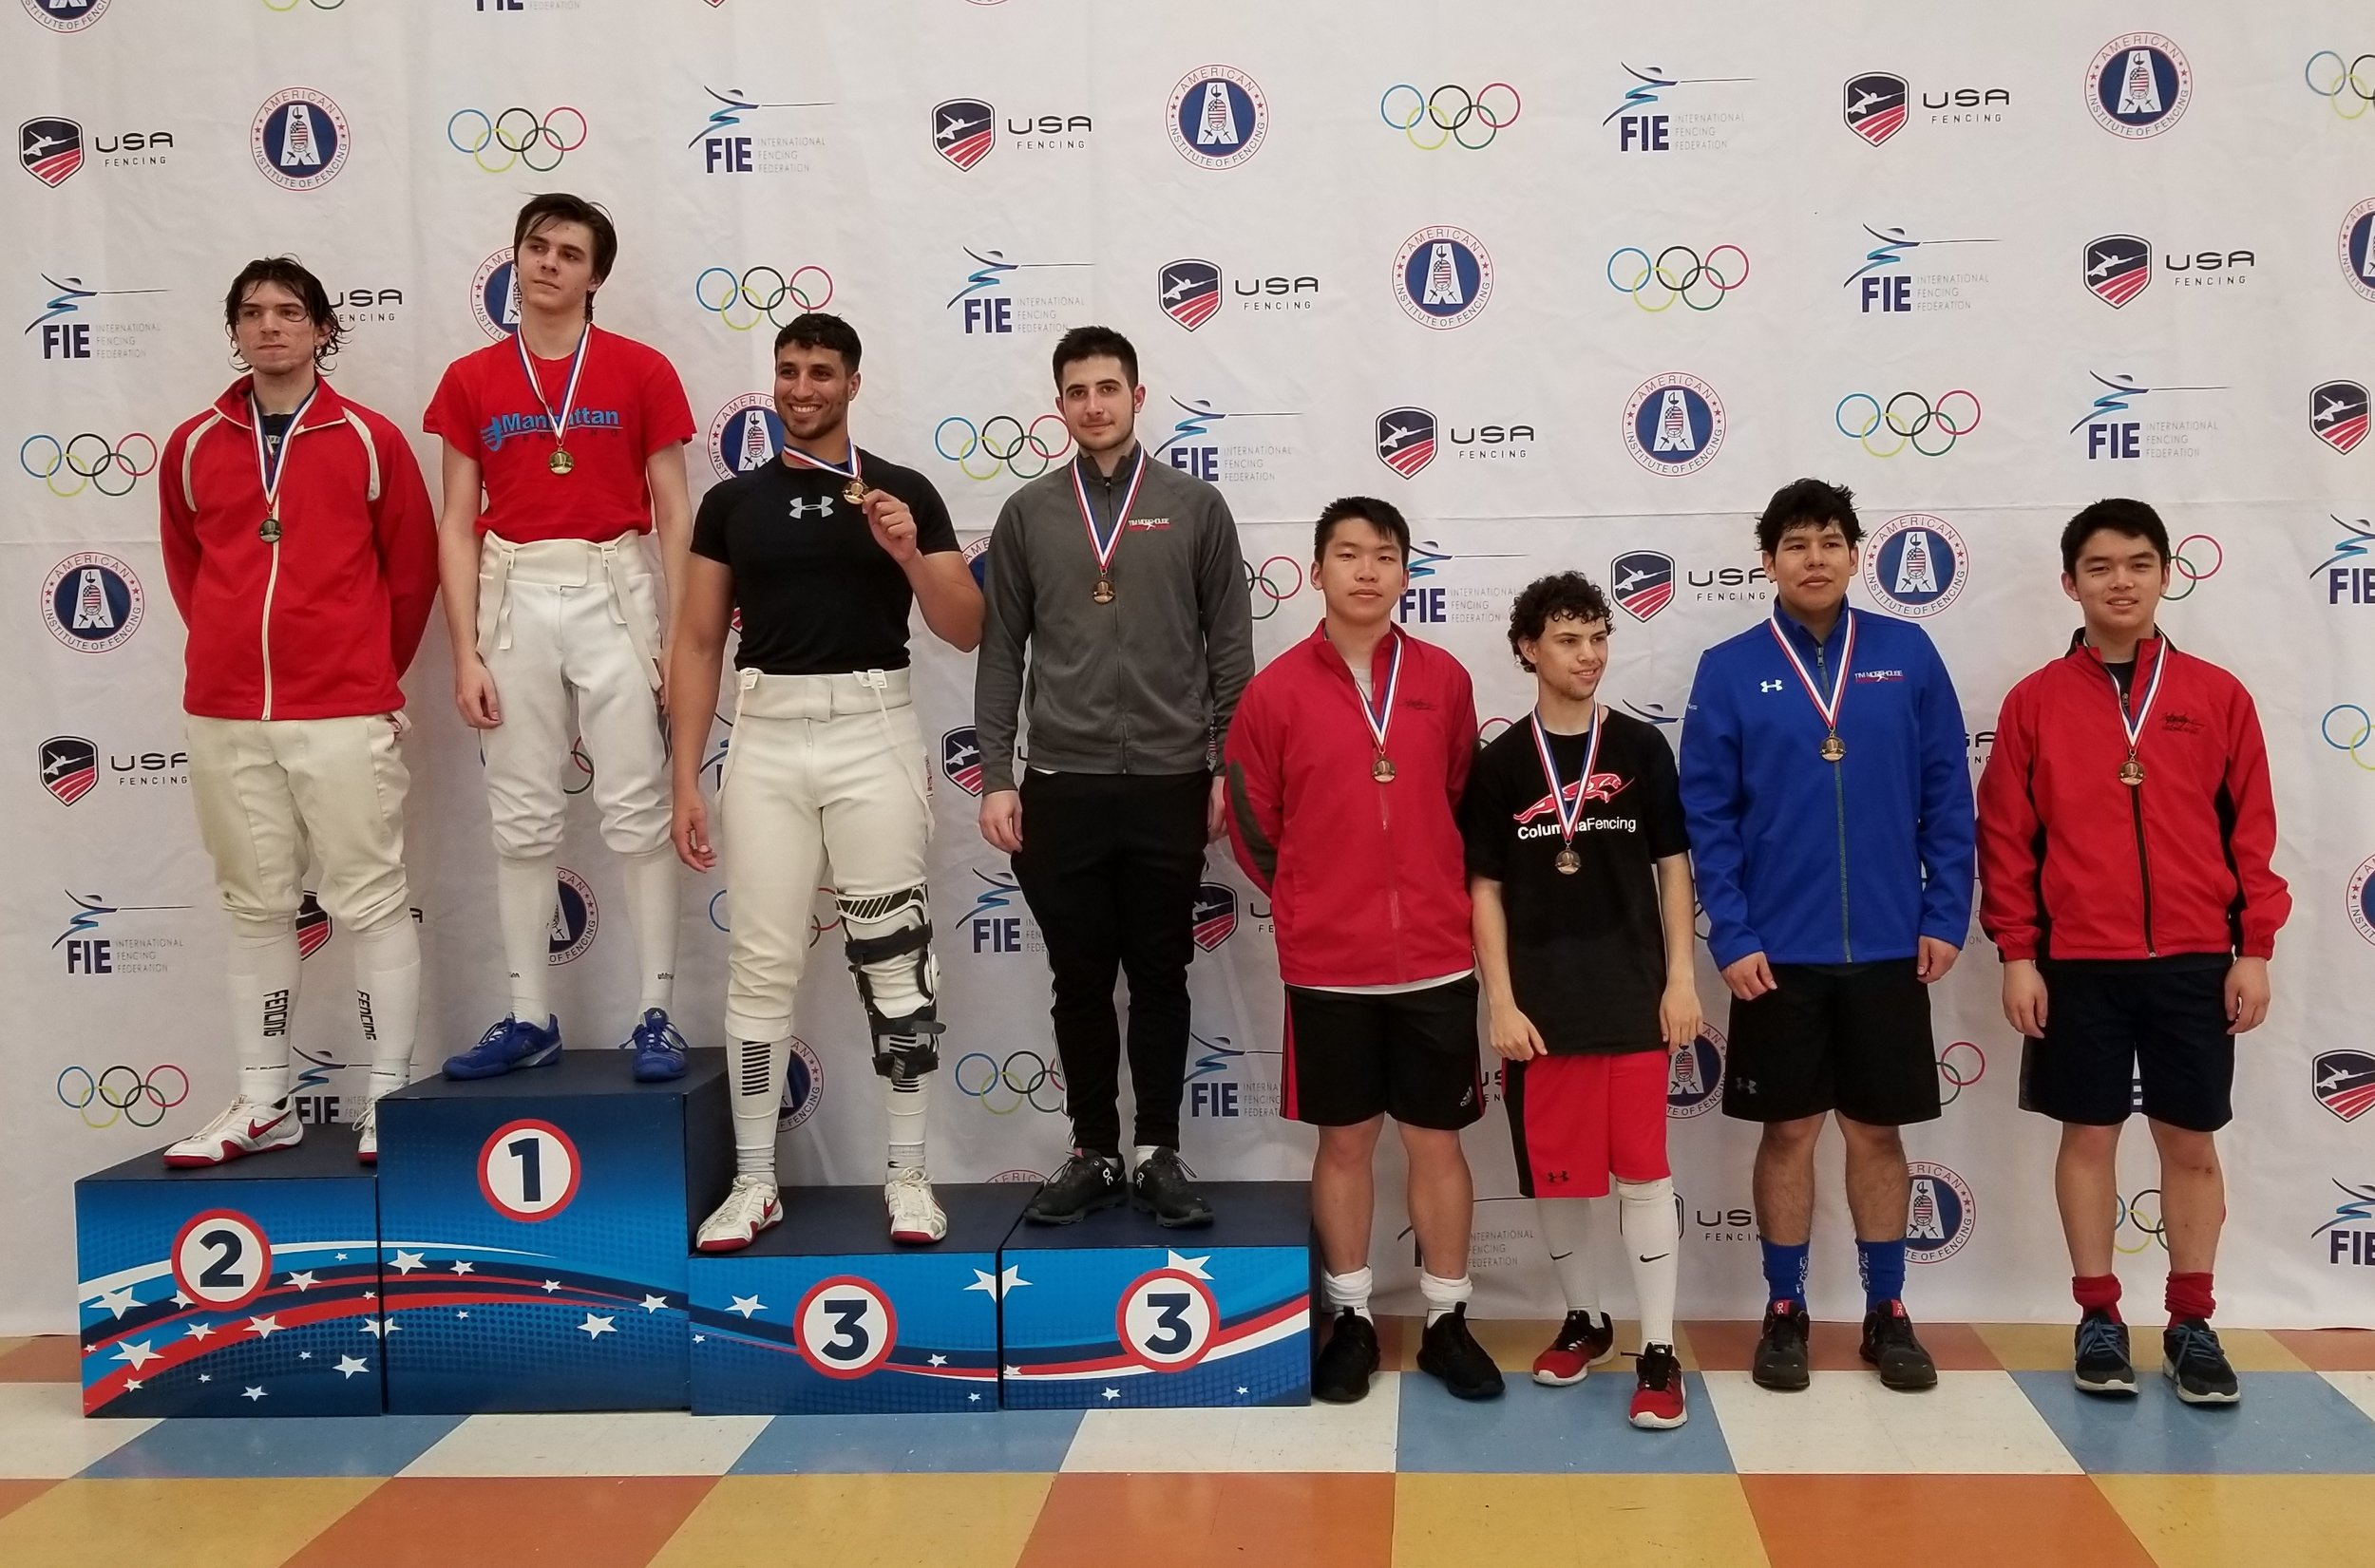 Braden Vaccari wins a Bronze Medal and James Huayta wins a Top-8 Medal in Senior Men's Saber